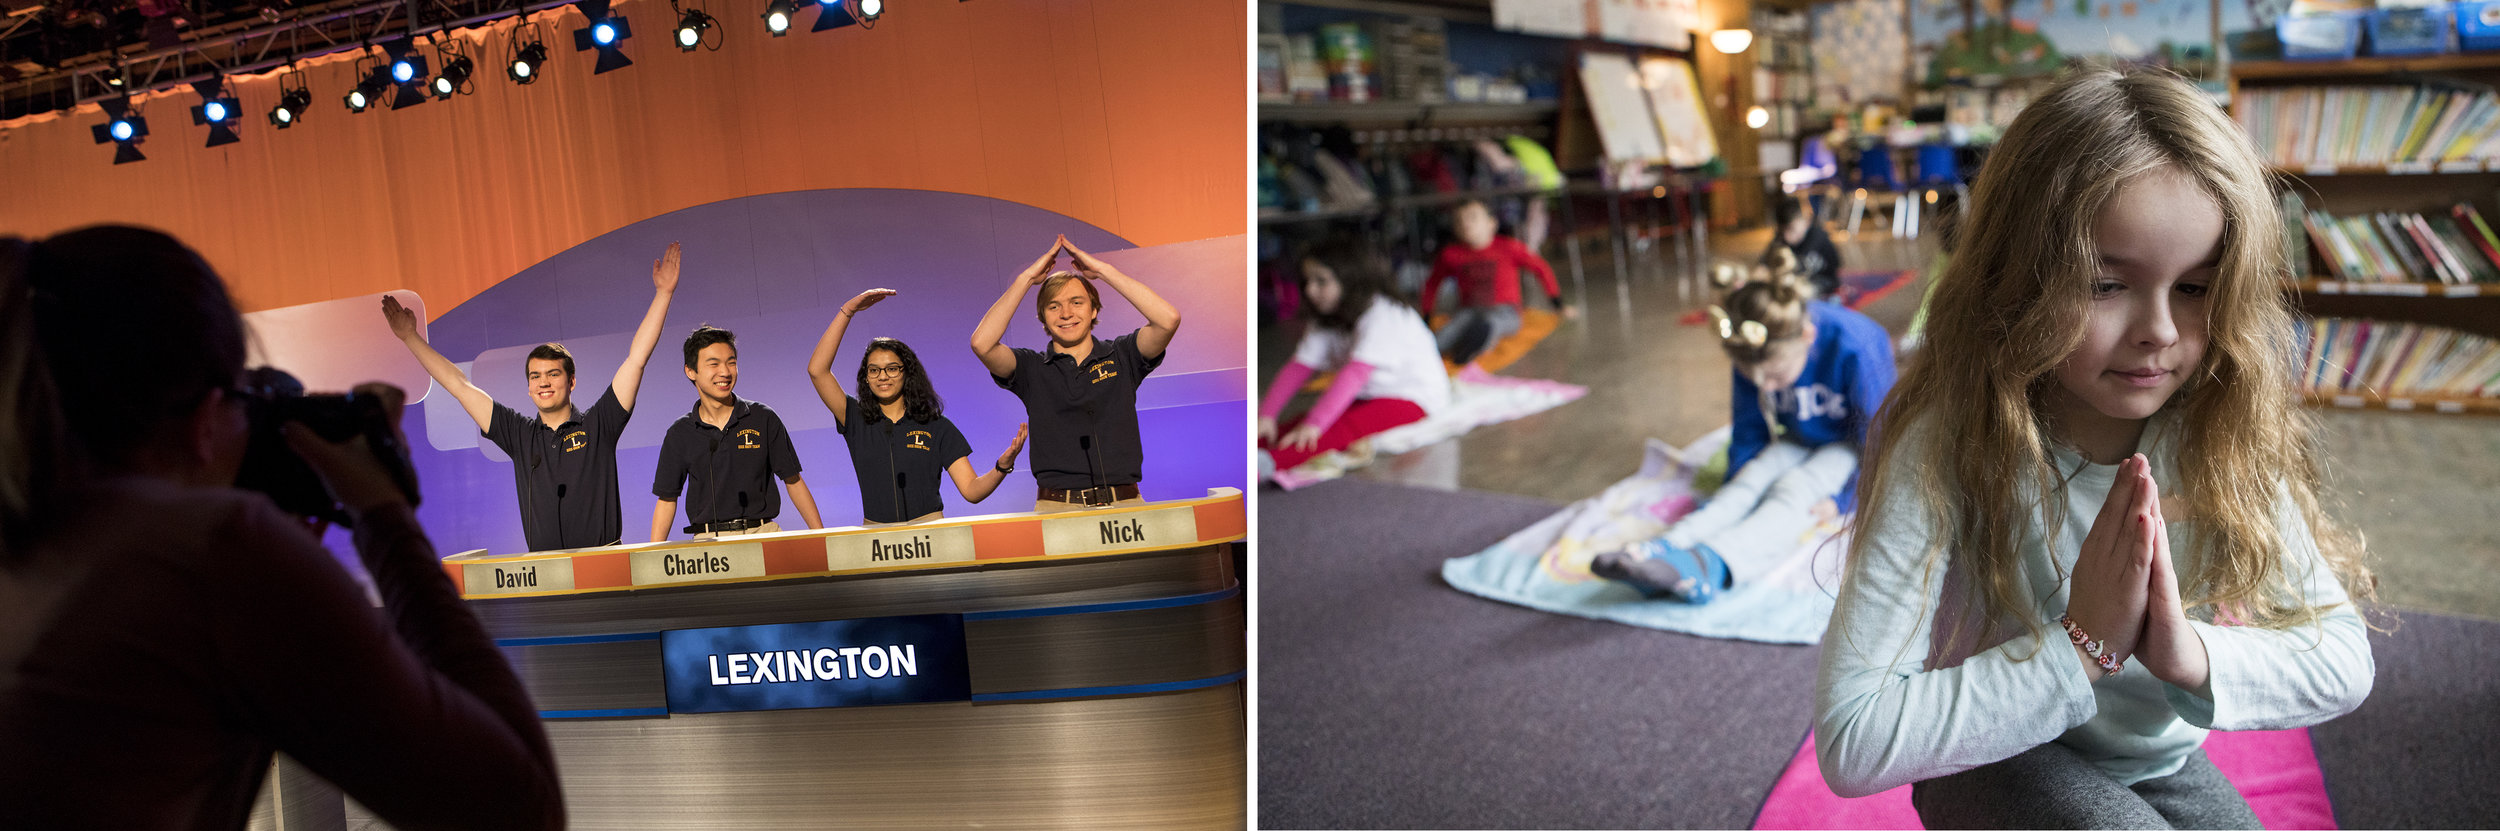 (Left) Lexington senior David Arena, juniors Charles Yang and Arushi Kalpande and senior Nick Rommel pose for a promotional photo before competing on an episode of High School Quiz Show against Boston Latin School at WGBH studios in Boston on January 19, 2019. (Right) Third grade student Lily Audran practices yoga during the annual Genius Day at Johnson Elementary School in Natick on Jan. 09, 2019.